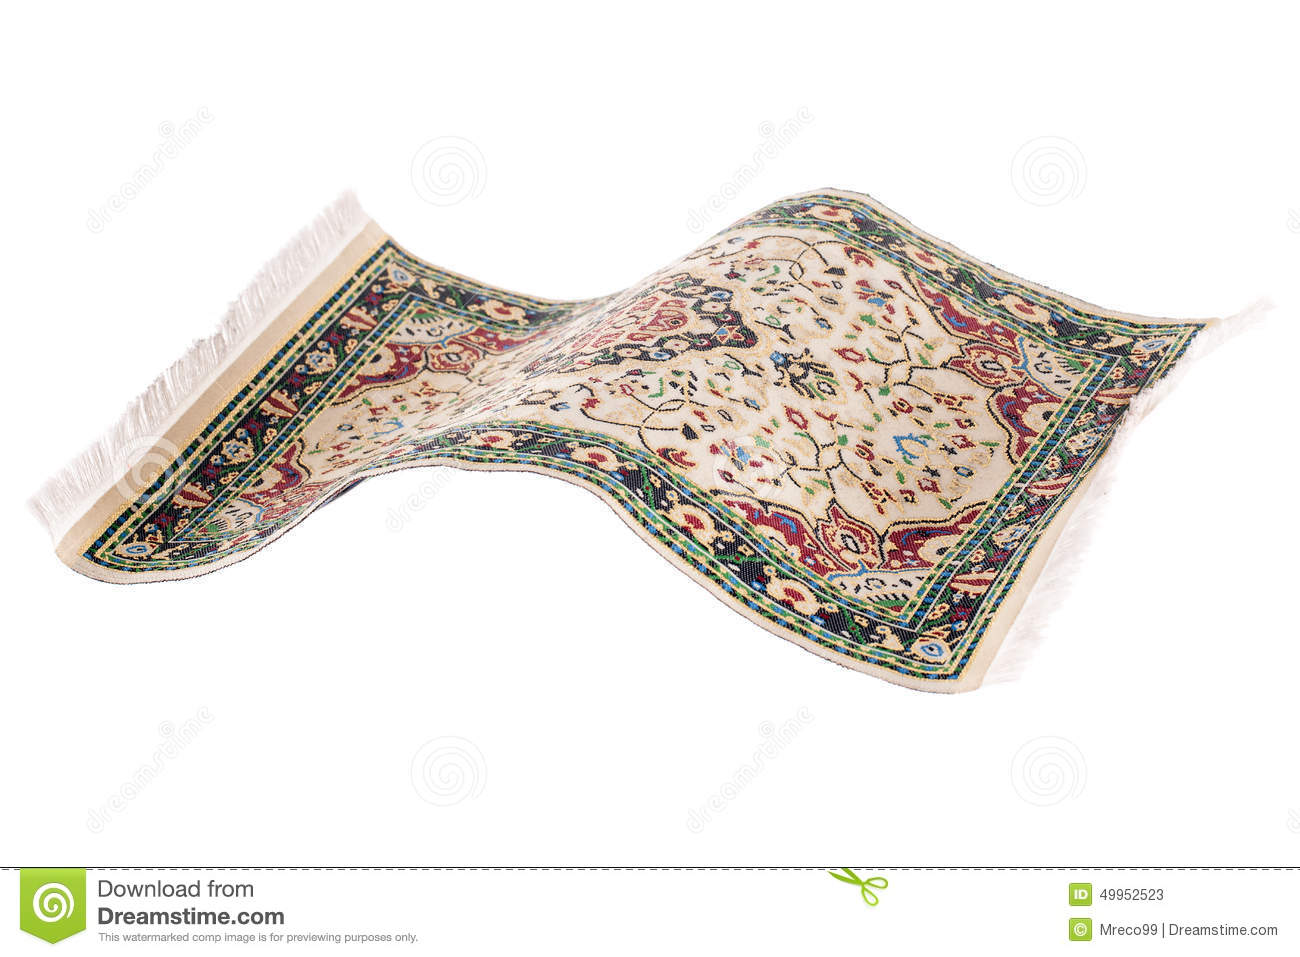 Png Fliegender Teppich Flying Magic Carpet Isolated Stock Photo Image 49952523